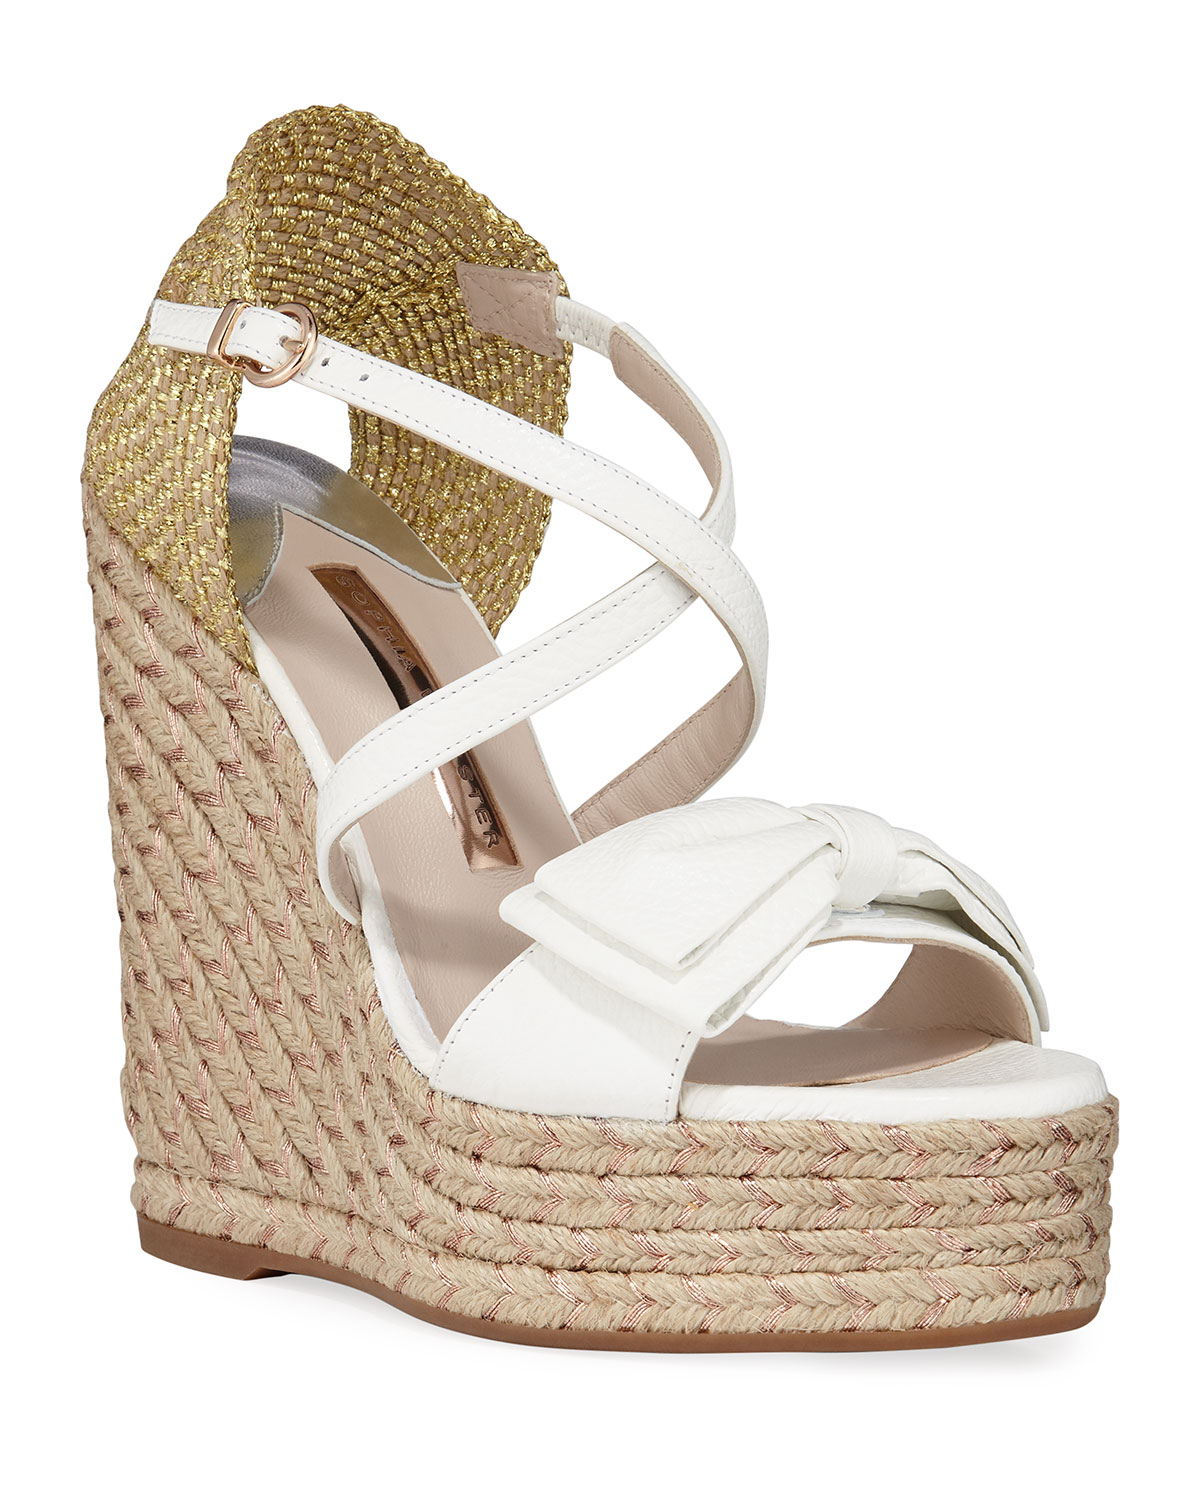 Sophia Webster Wedges BONNIE METALLIC WEDGE BOW ESPADRILLES